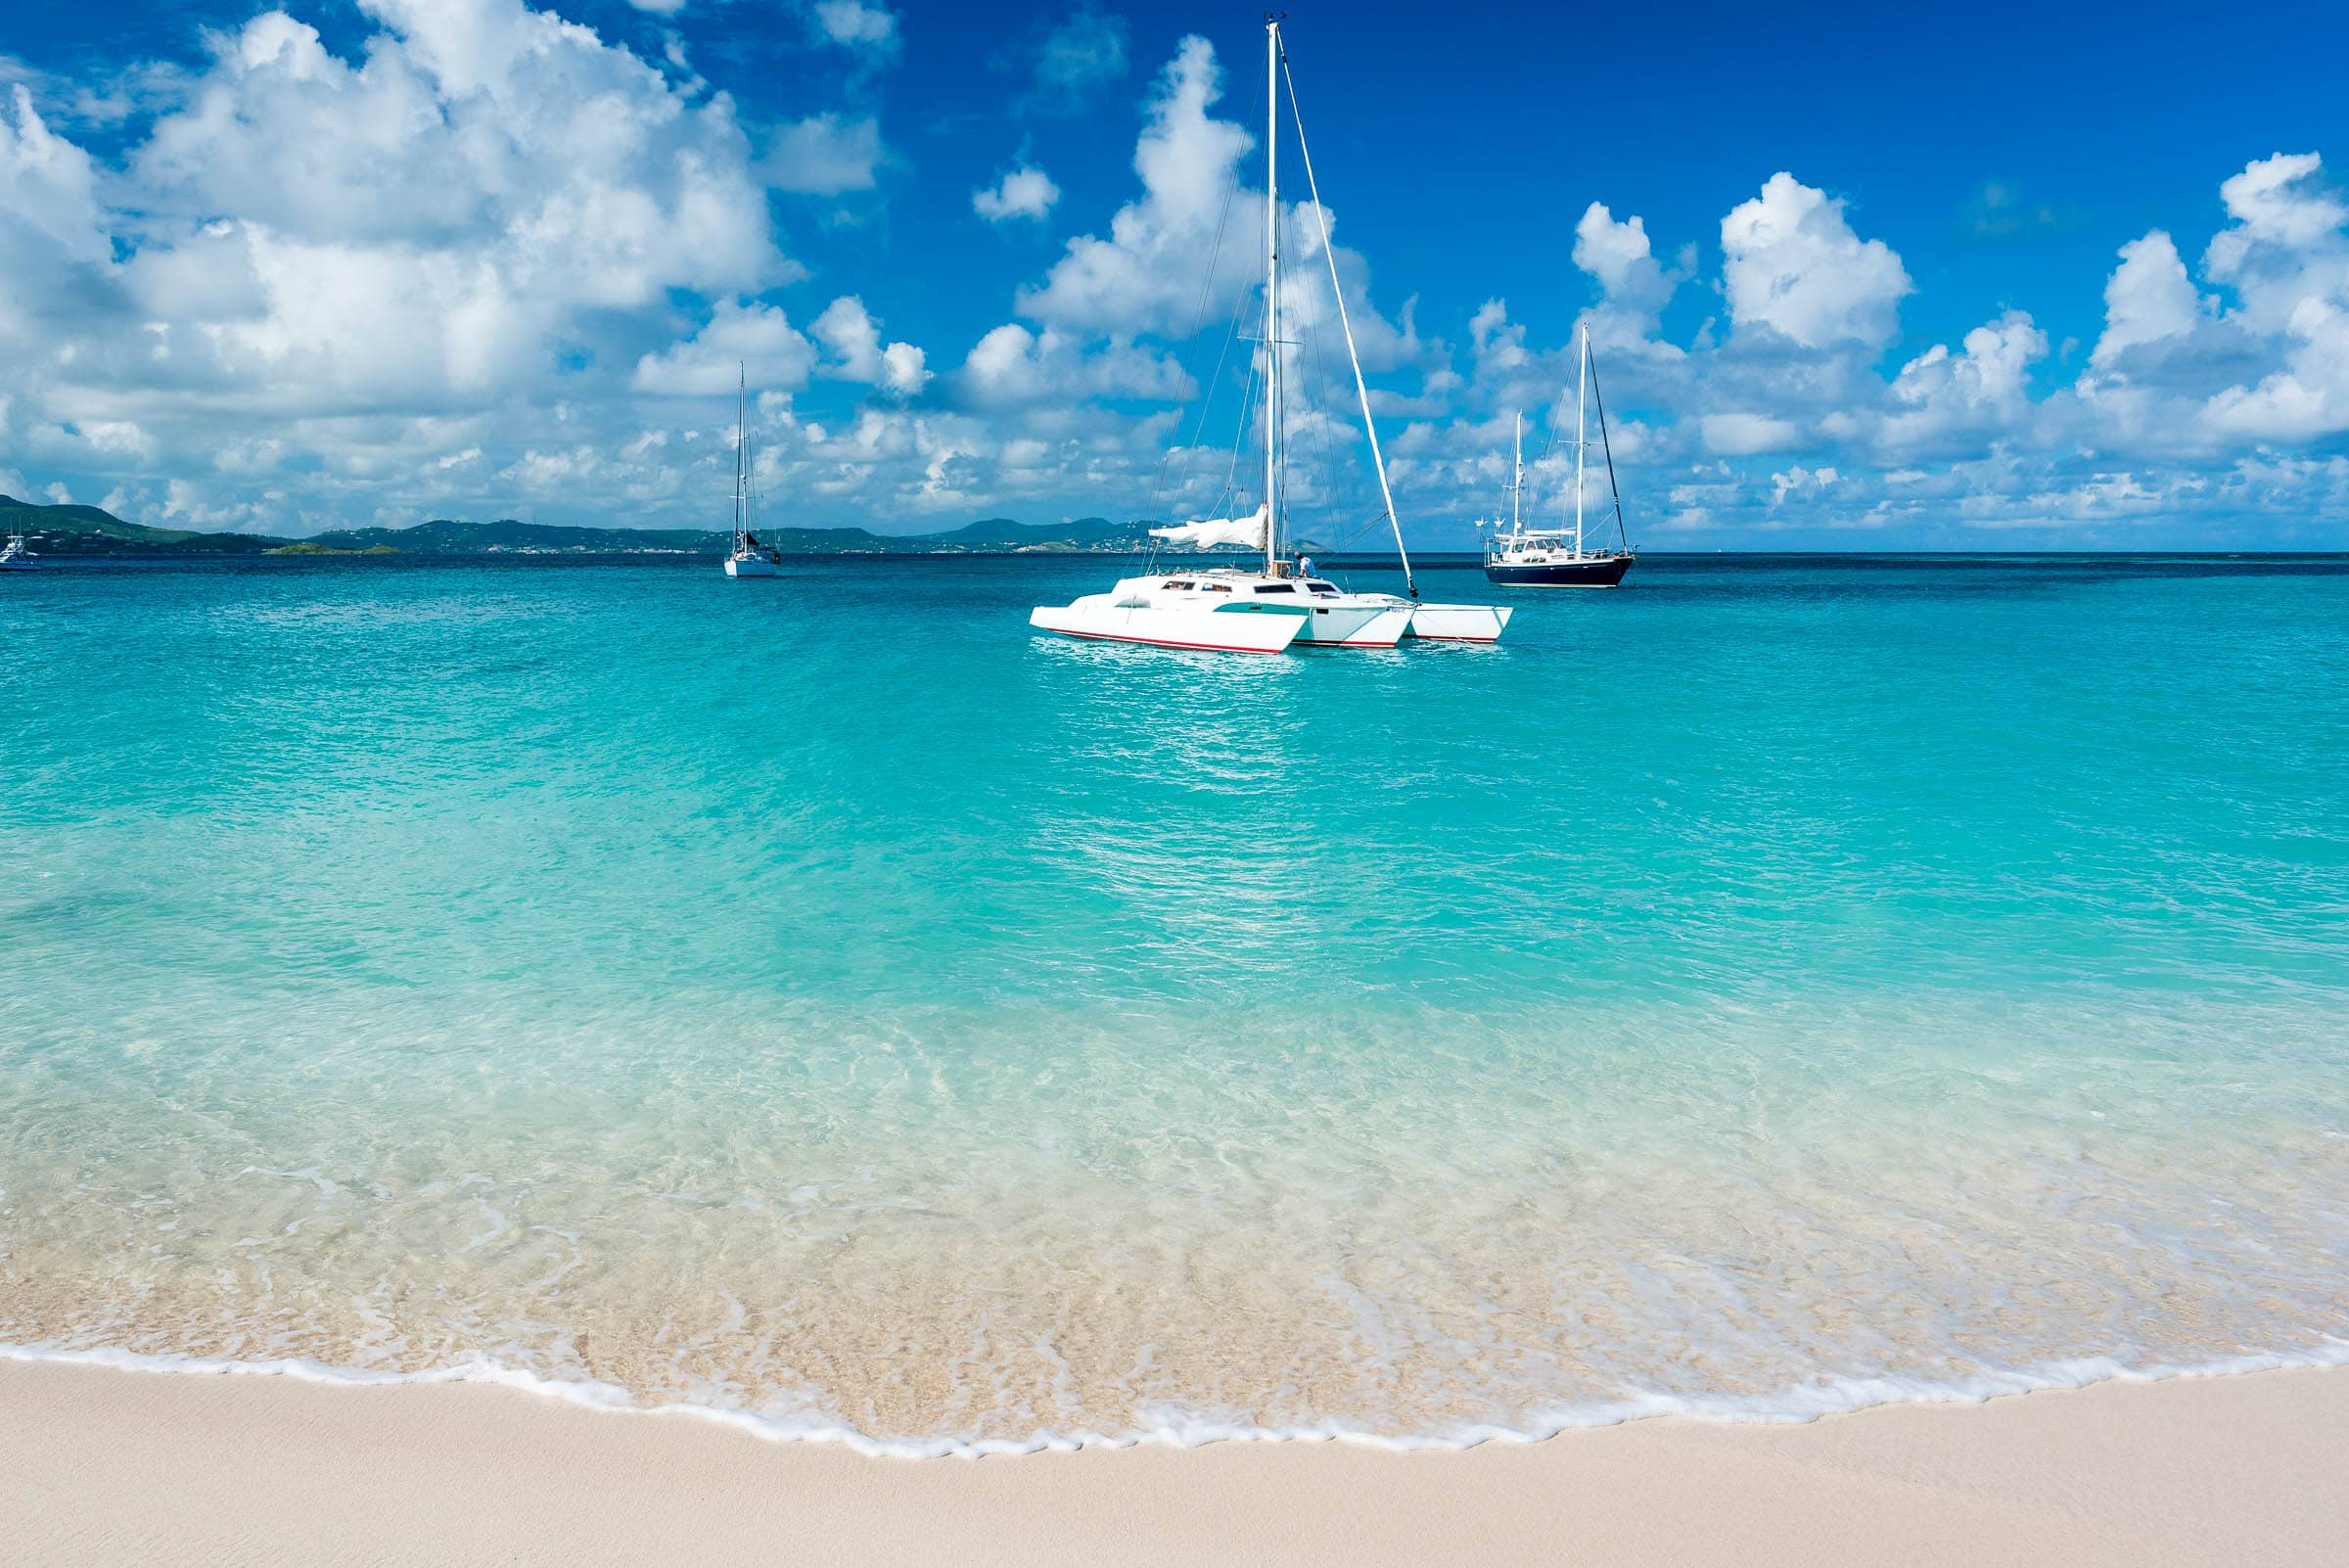 History About Cayman Islands